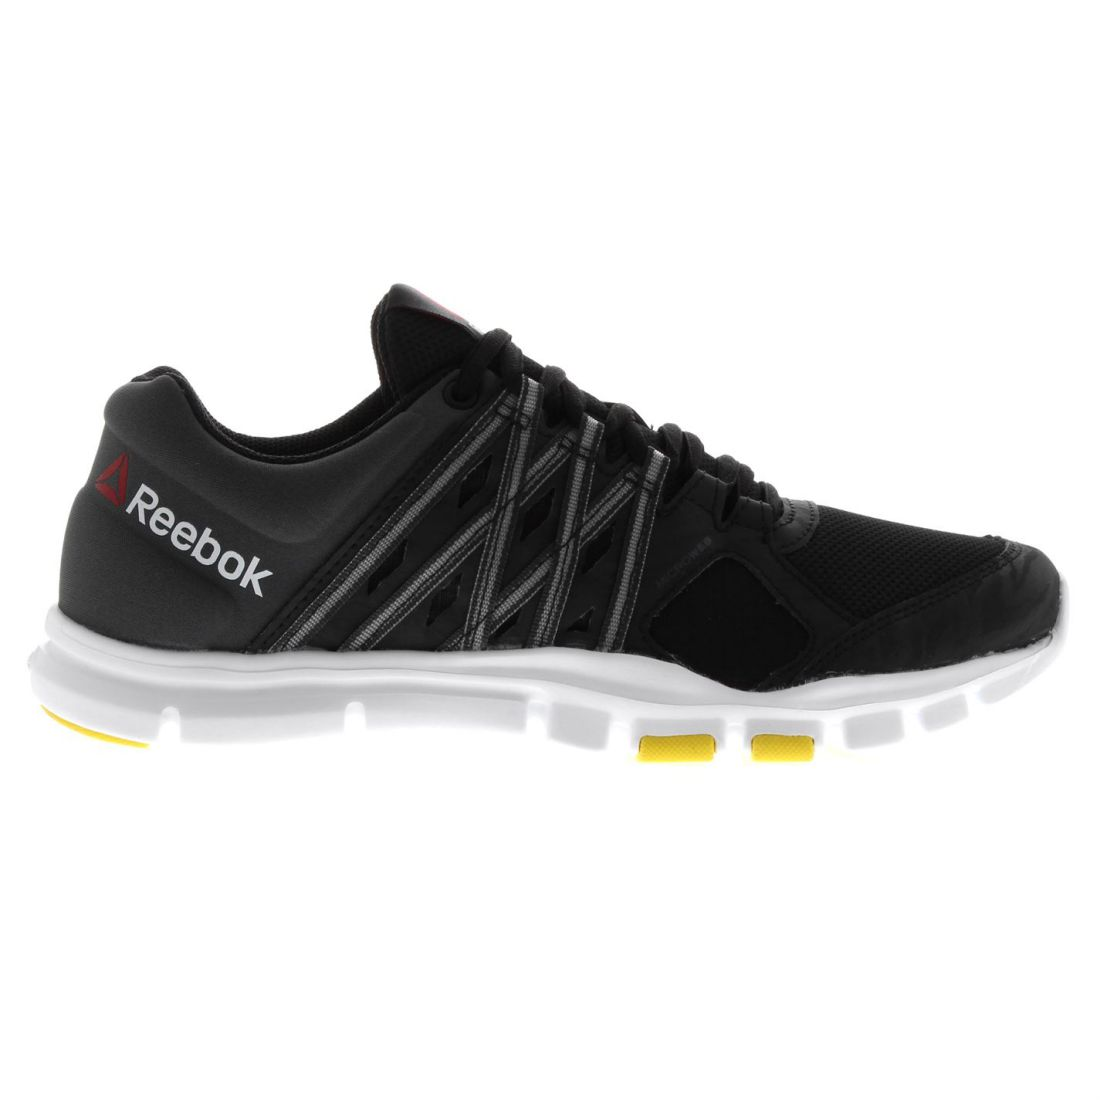 2baa302c3e4a Details about Reebok Mens Yourflex 8 Trainers Laced Textile Sports Shoes  Memory Tech Insole